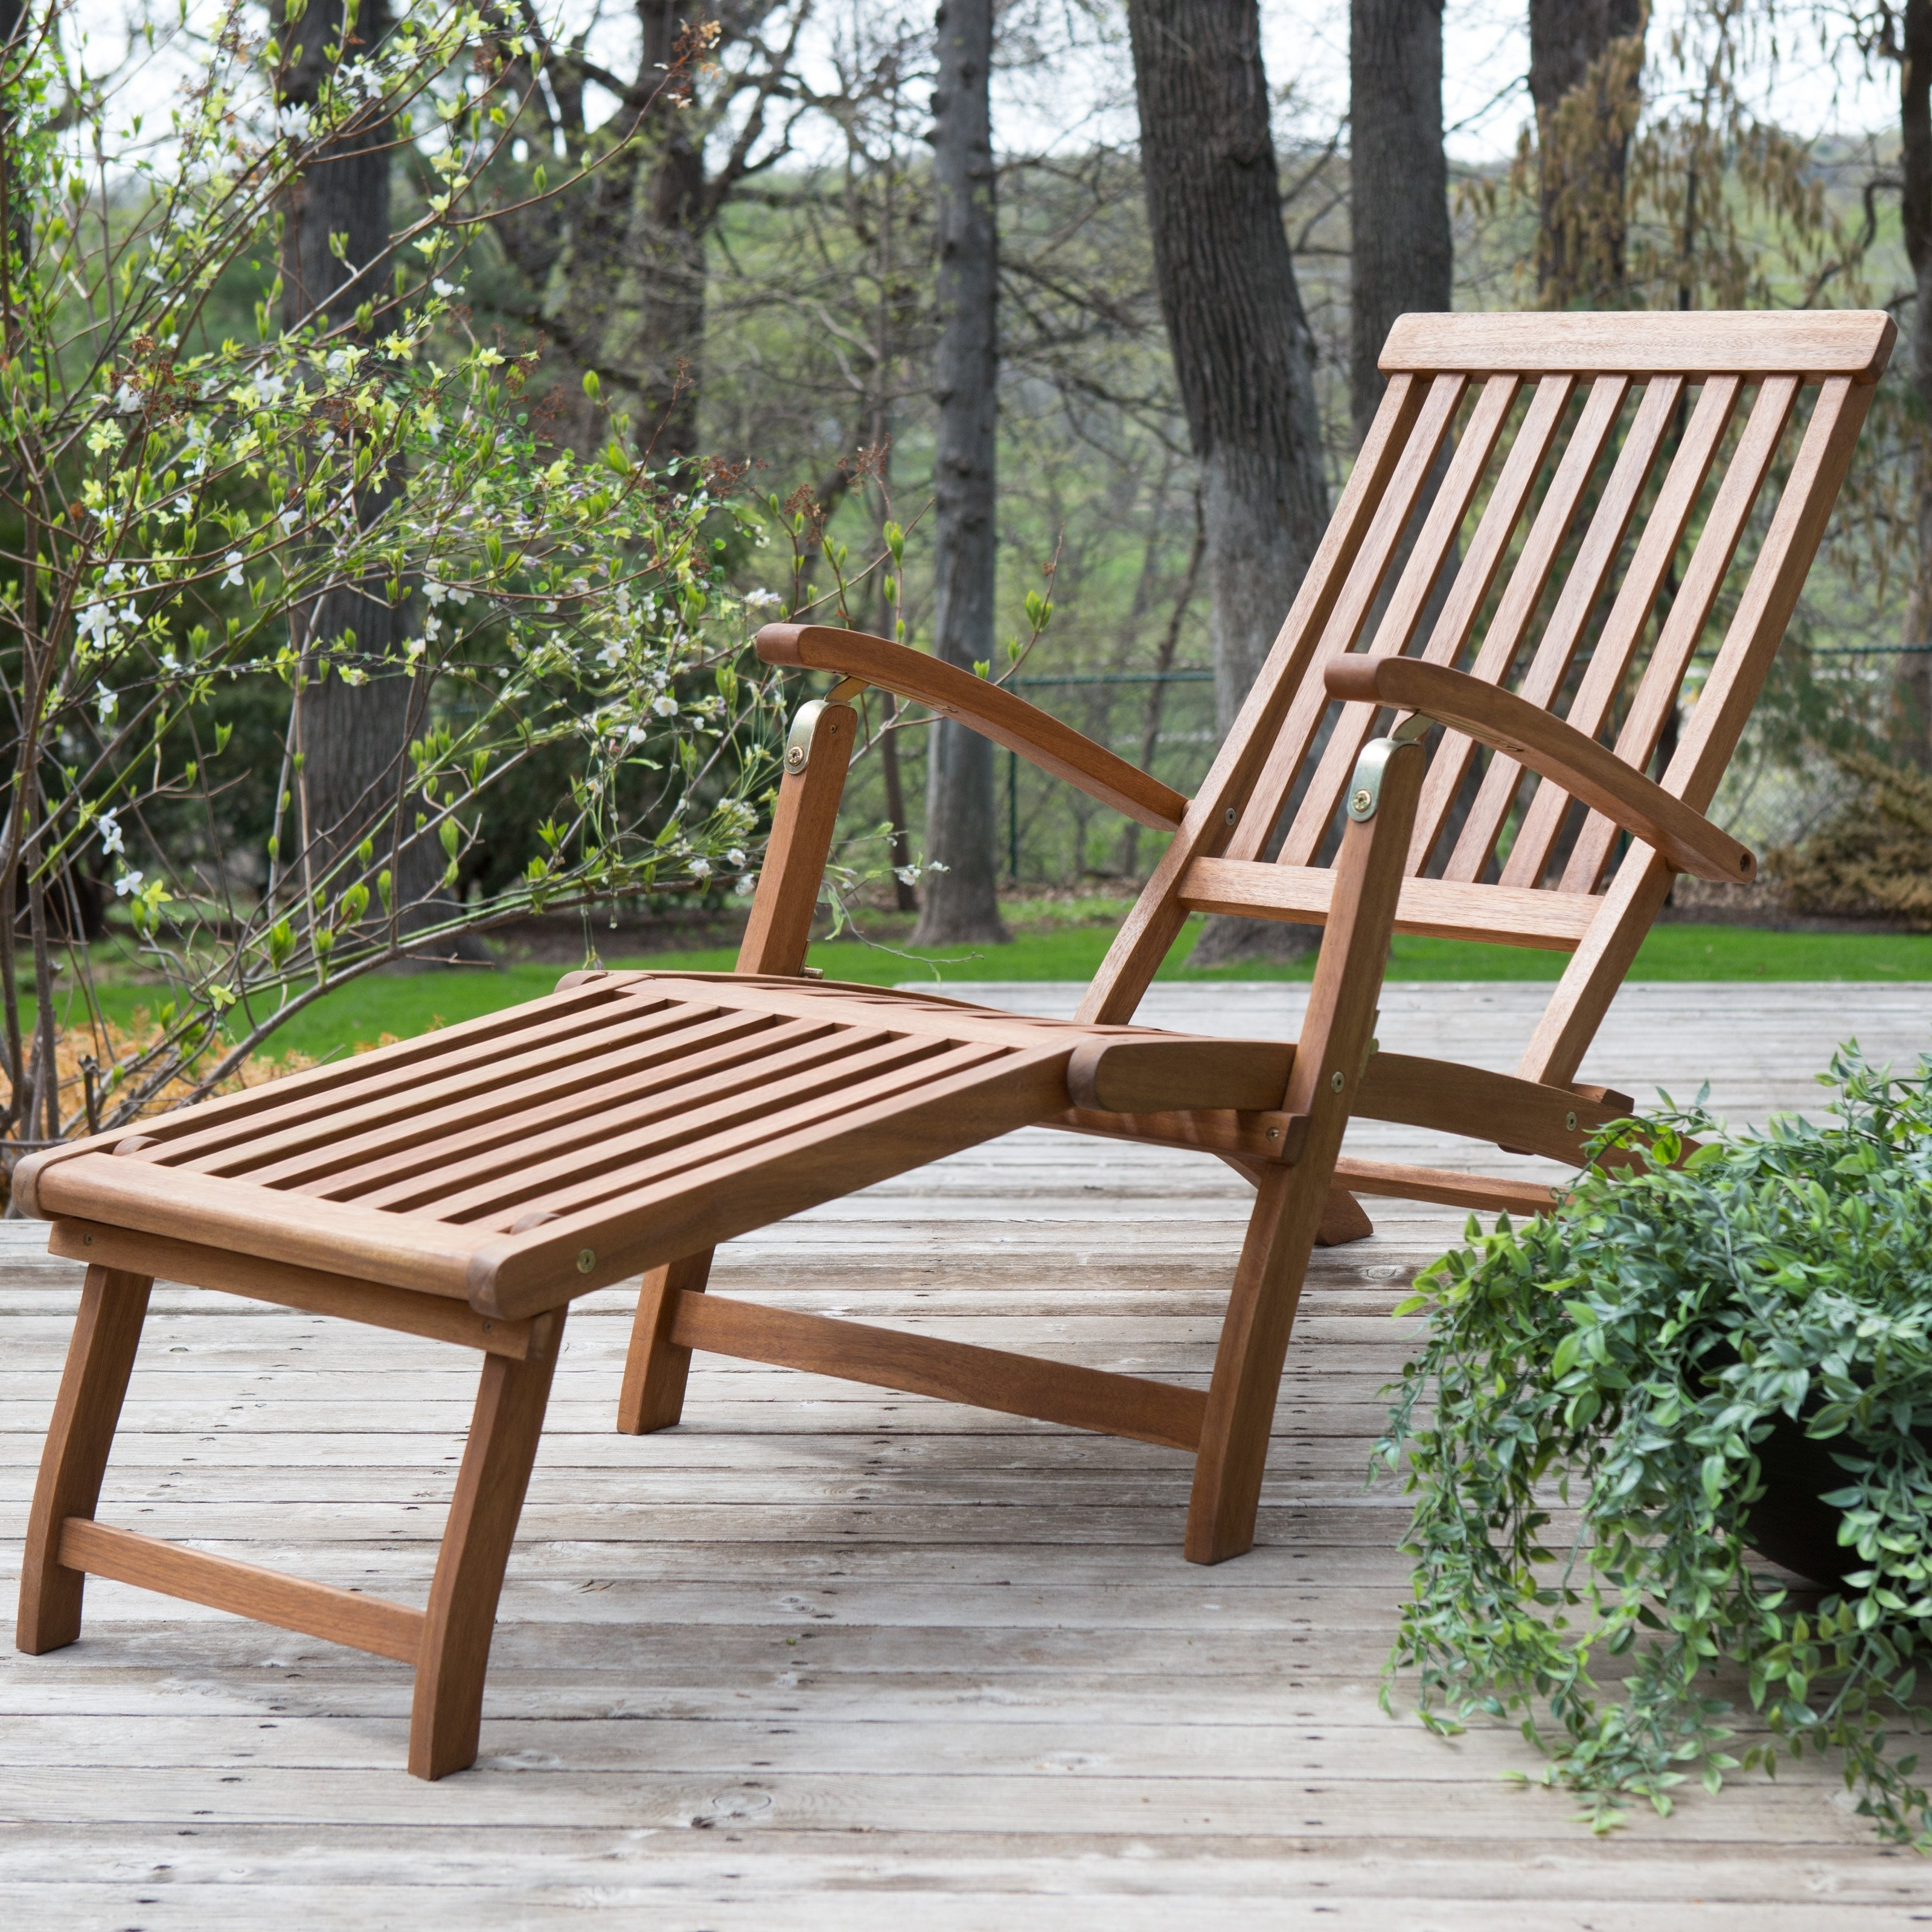 Best Selling Home Decor Molokini Wood Outdoor Chaise Lounge—Set Of Inside Latest Wooden Chaise Lounges (View 6 of 15)